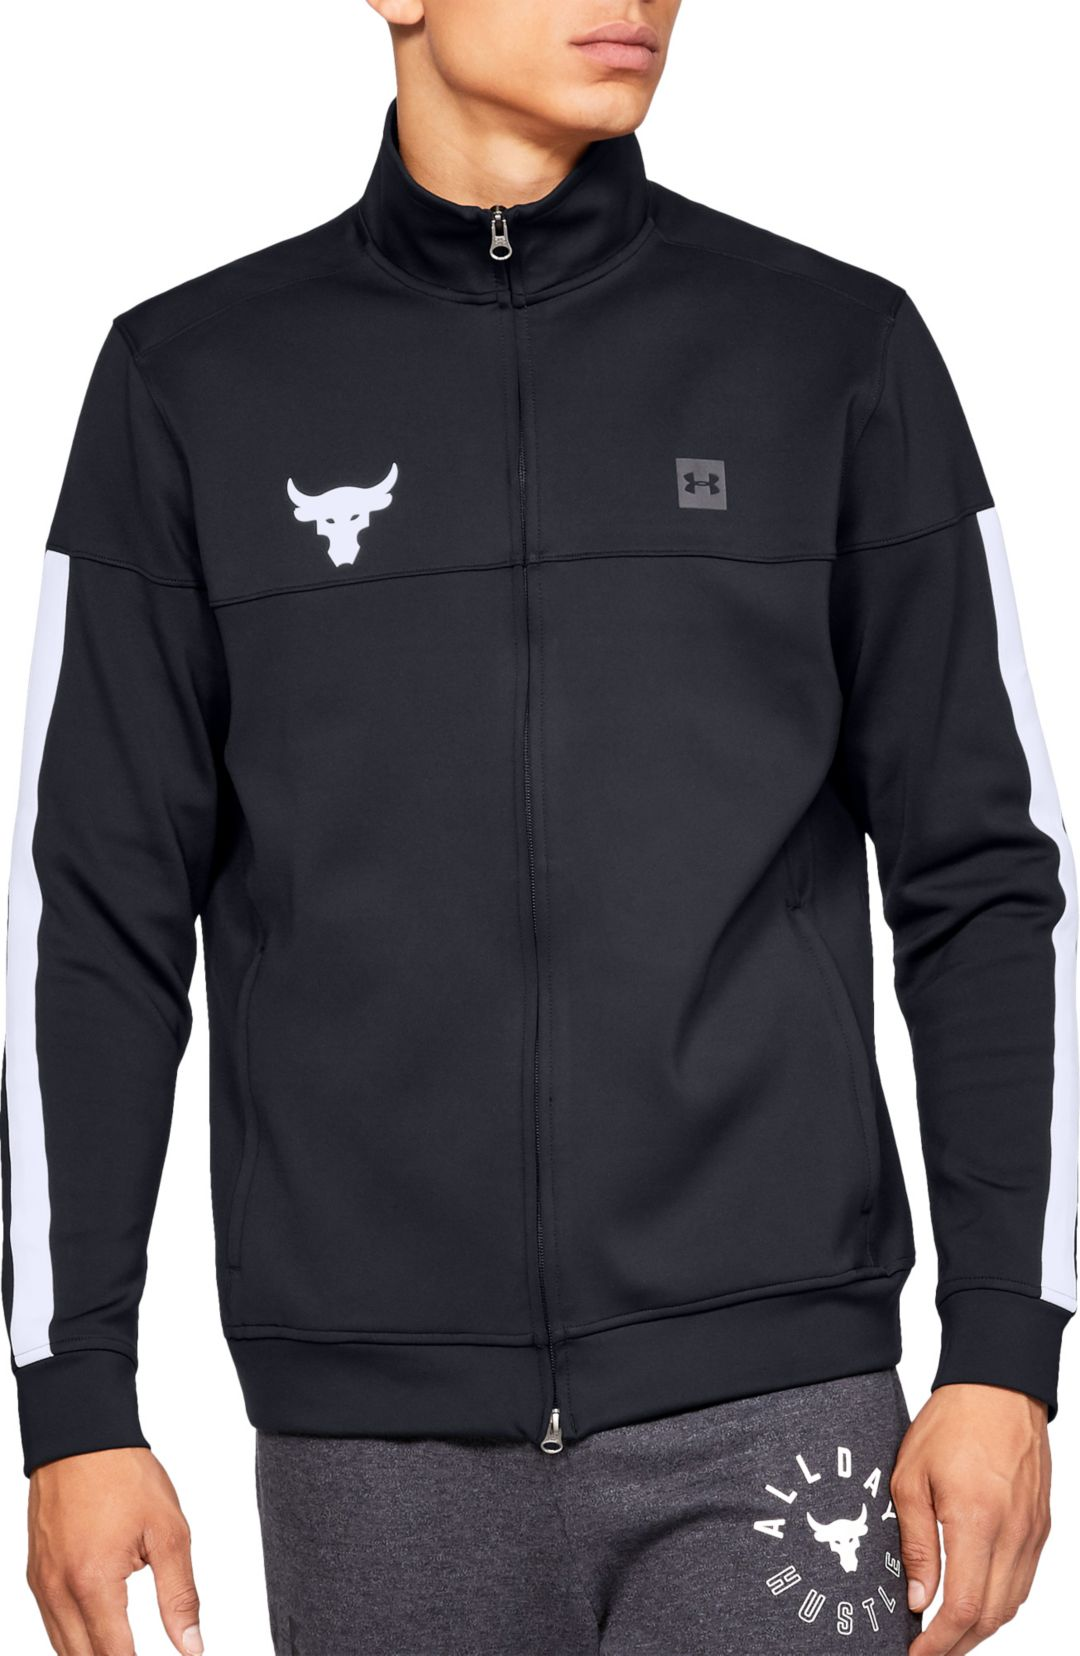 cbfe4c9bbe Under Armour Men's Project Rock Track Jacket   DICK'S Sporting Goods